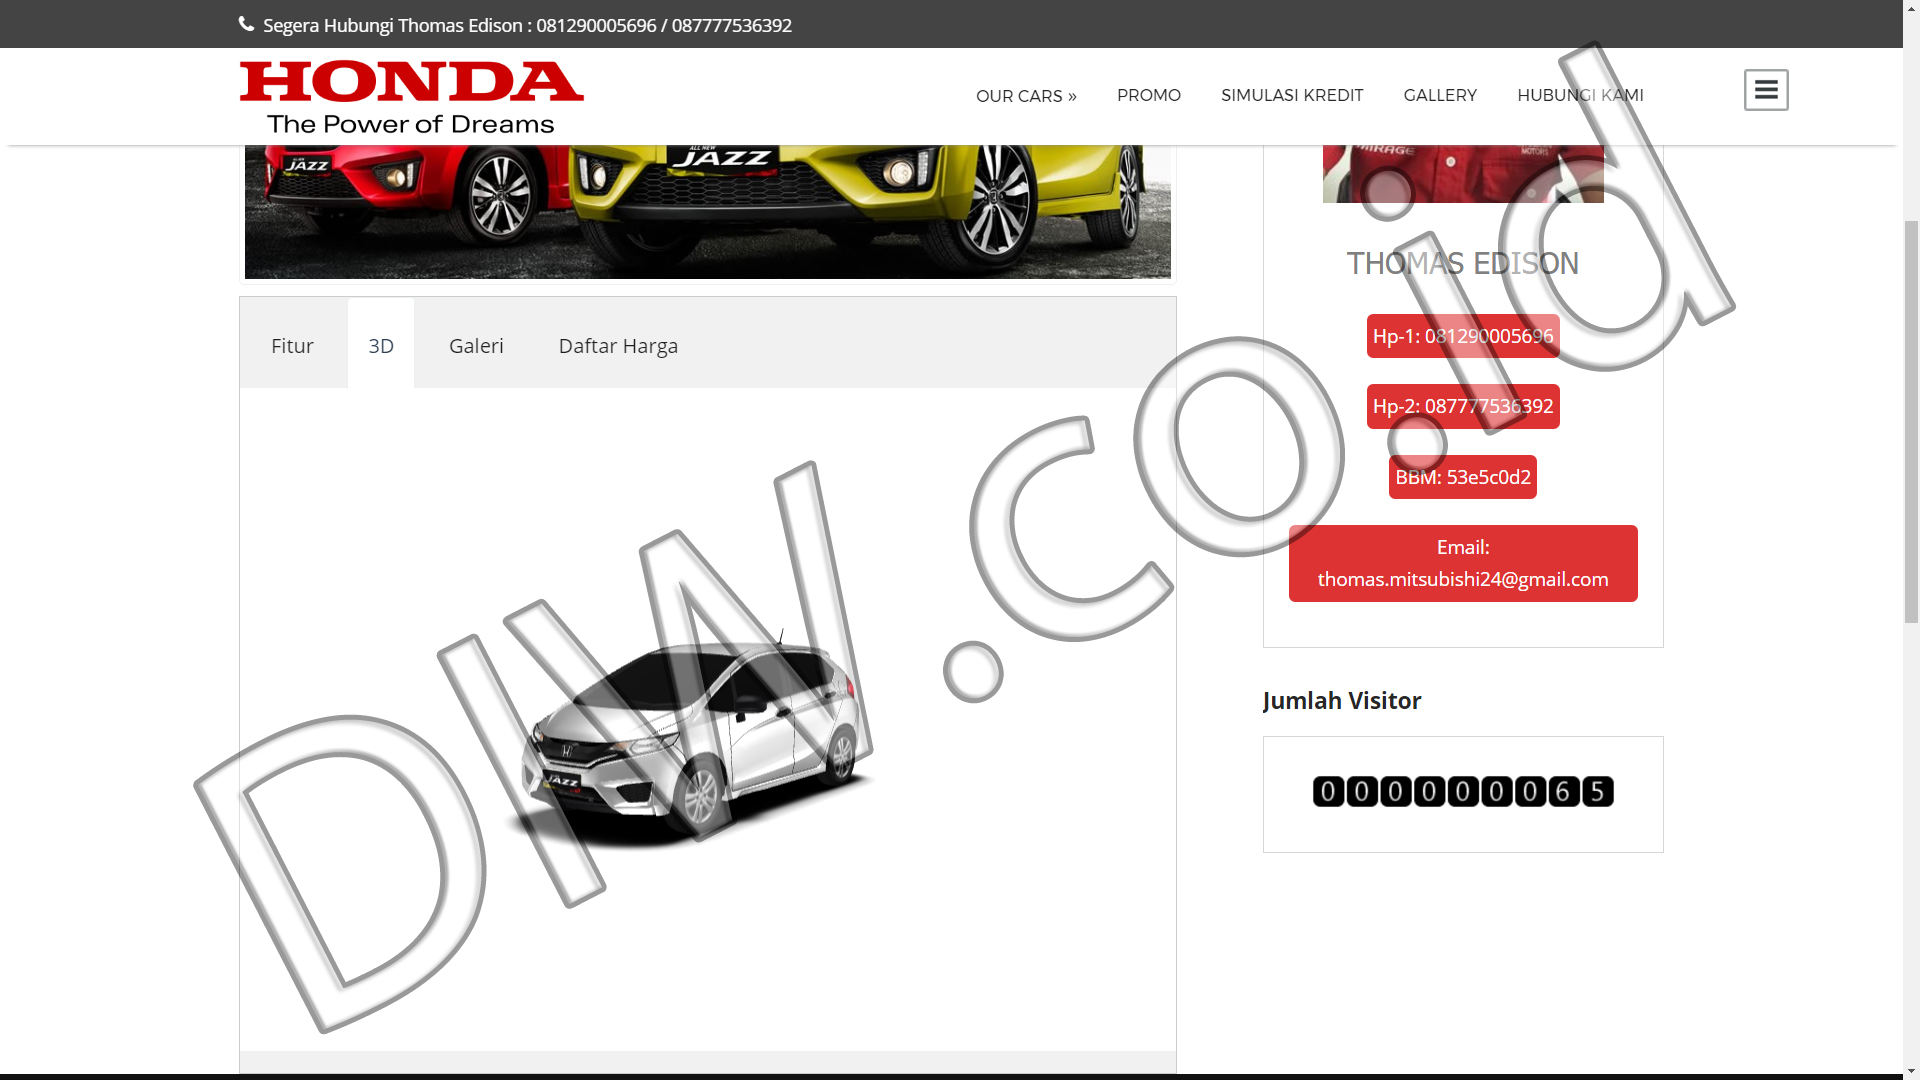 Portfolio 5 - Promo Honda Mobil - Andri Sunardi - Freelancer - Web Developer - CEO DIW.co.id